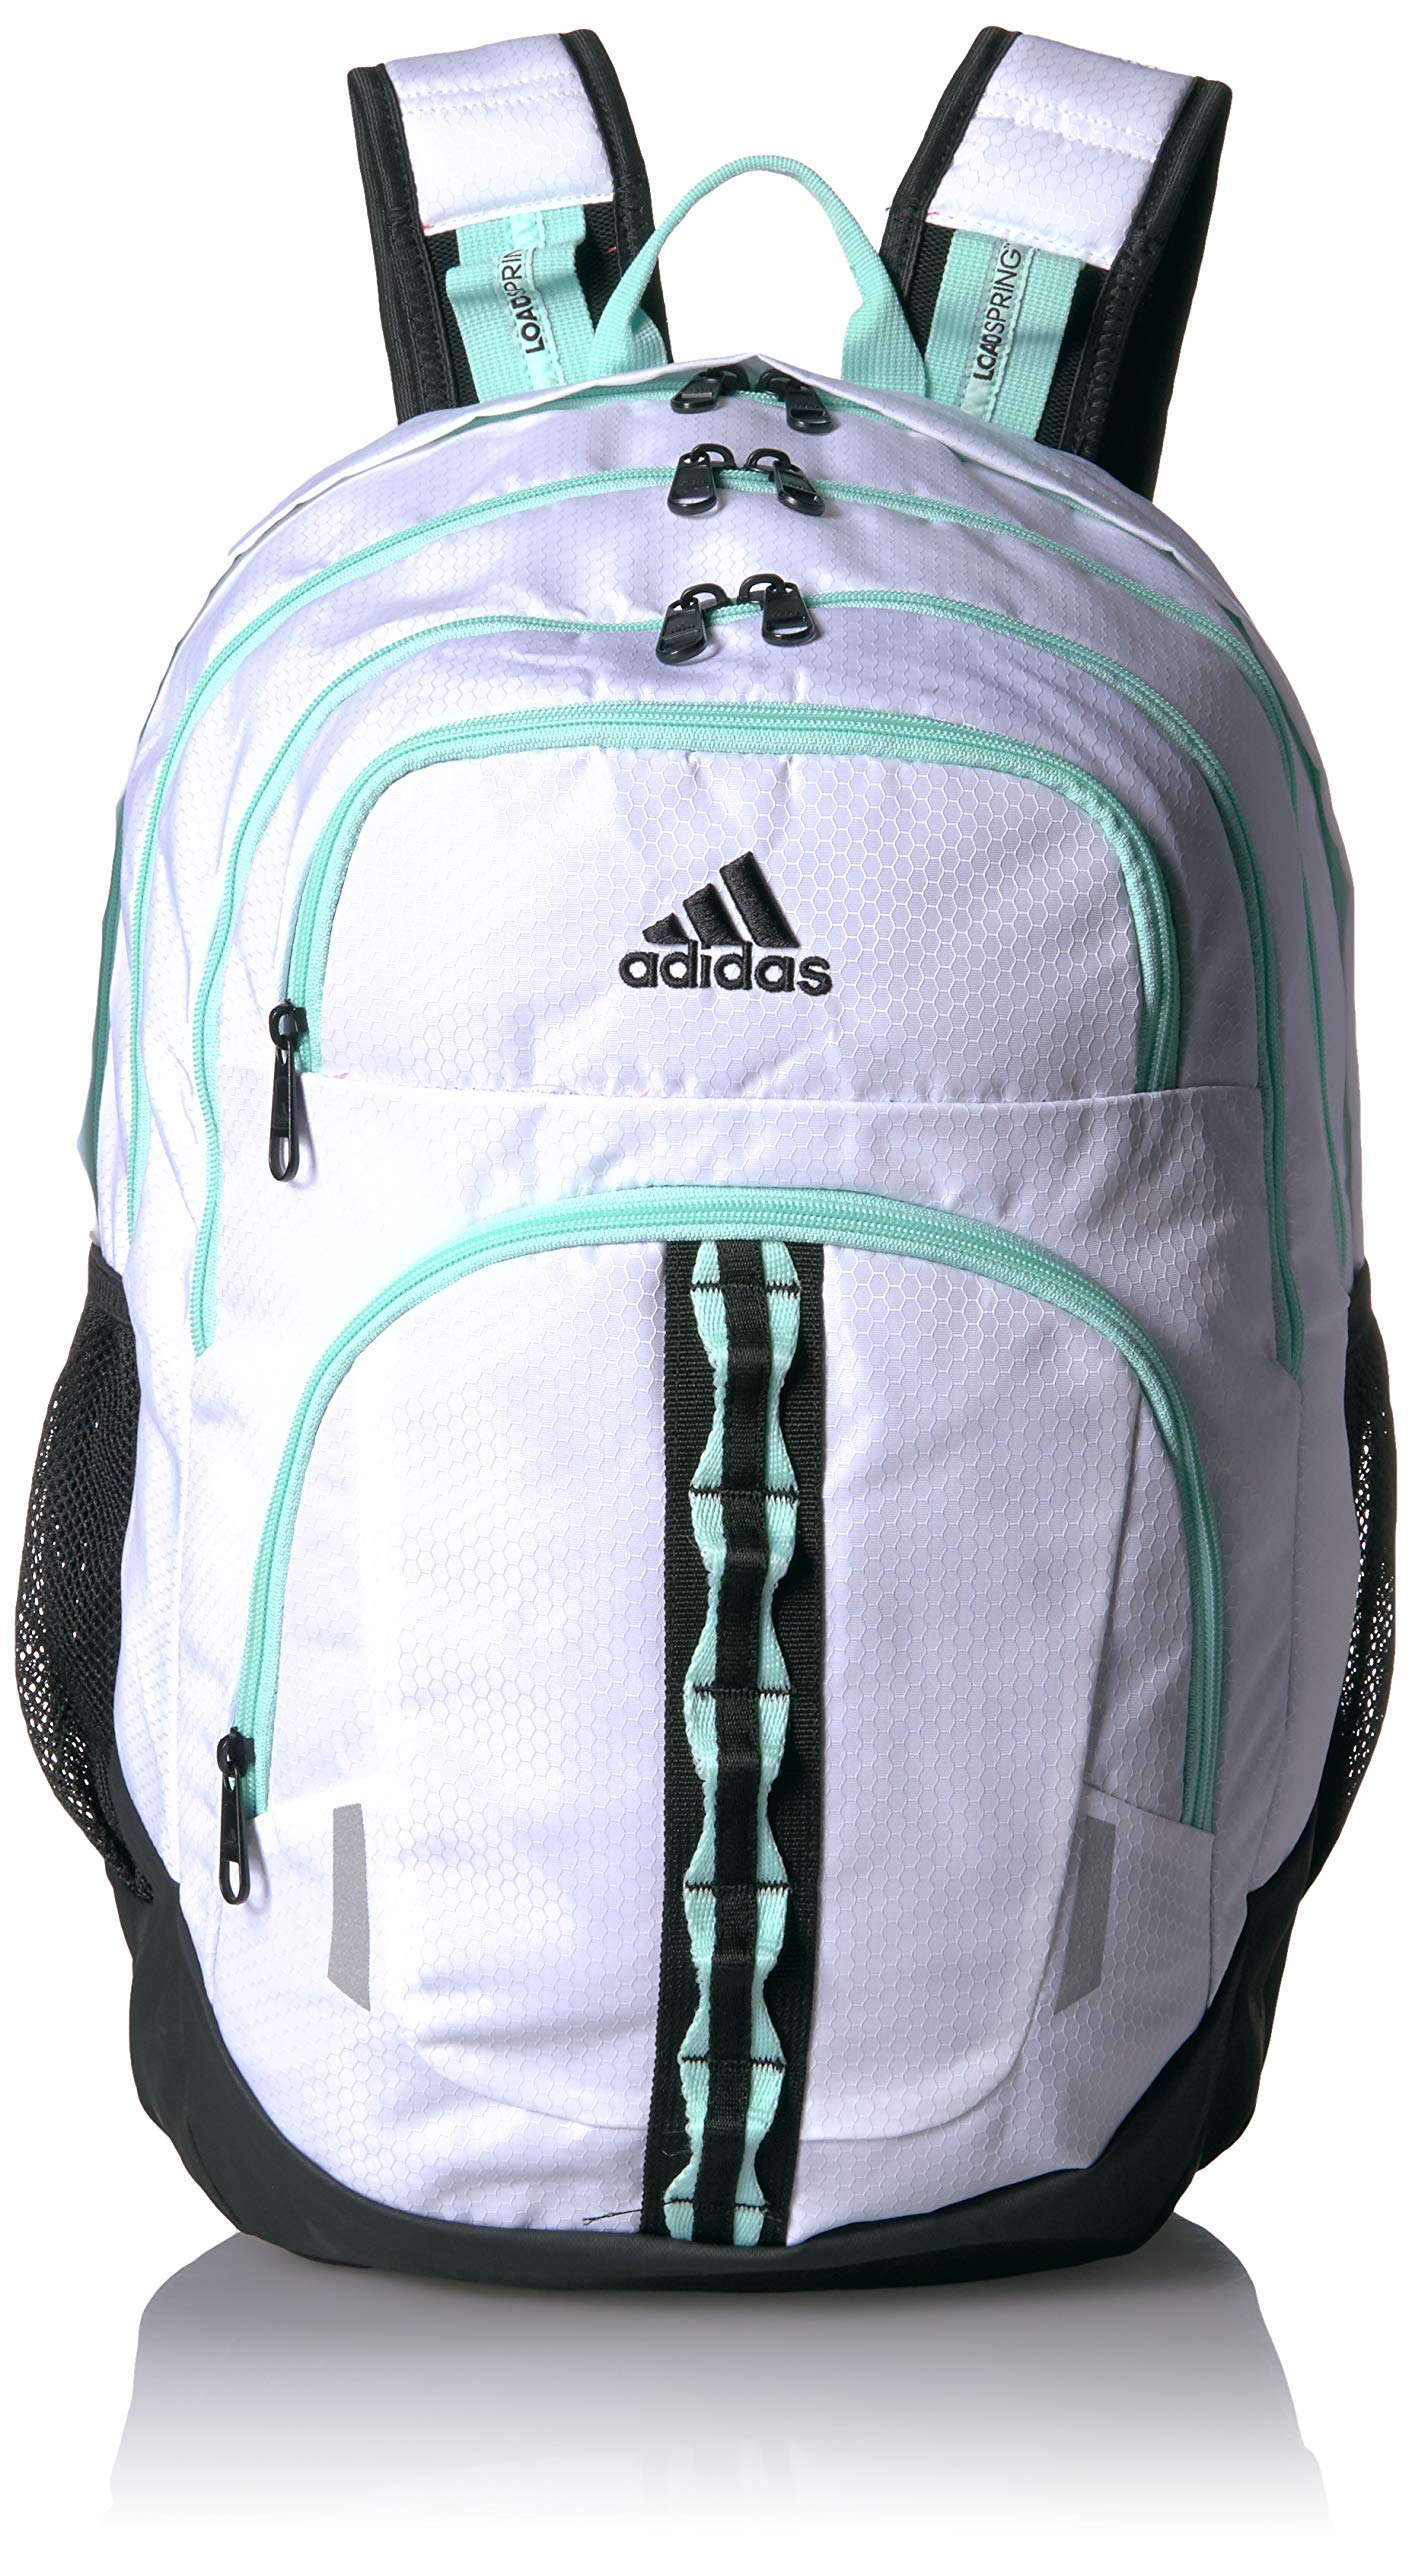 adidas Unisex Prime Backpack, White/Clear Mint/Black, ONE SIZE by adidas